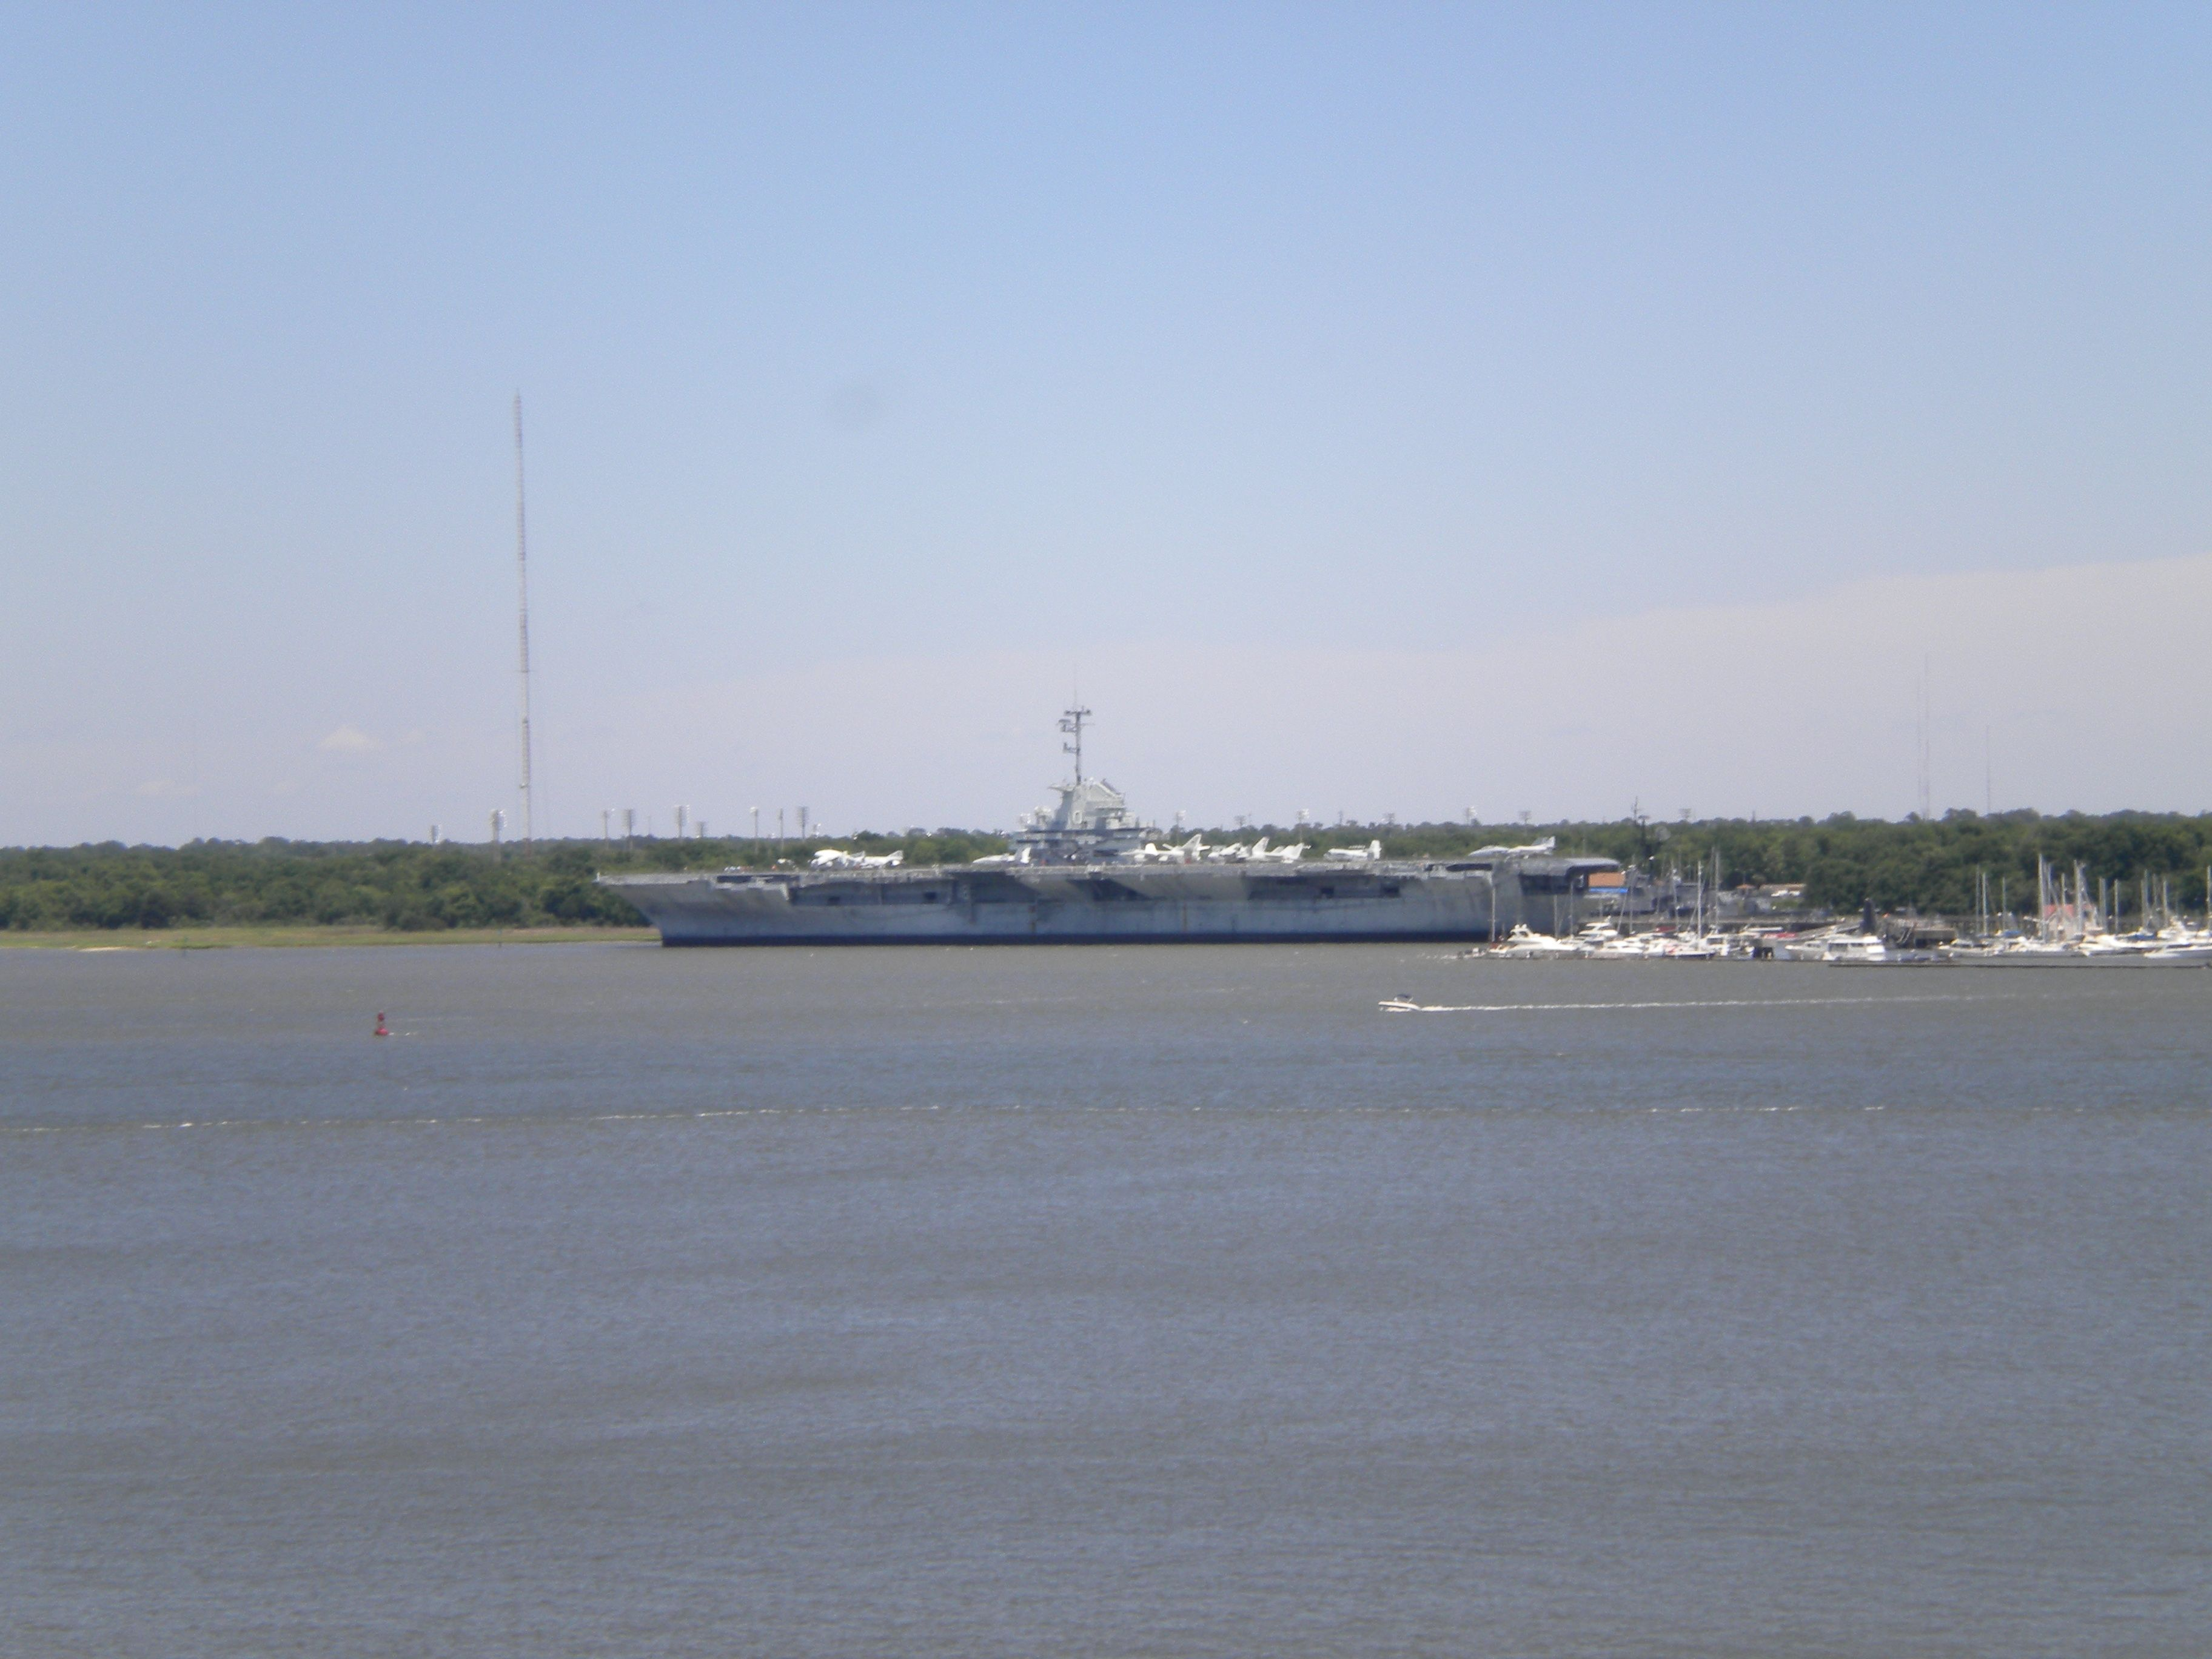 USS Yorktown moored on across from our ship.